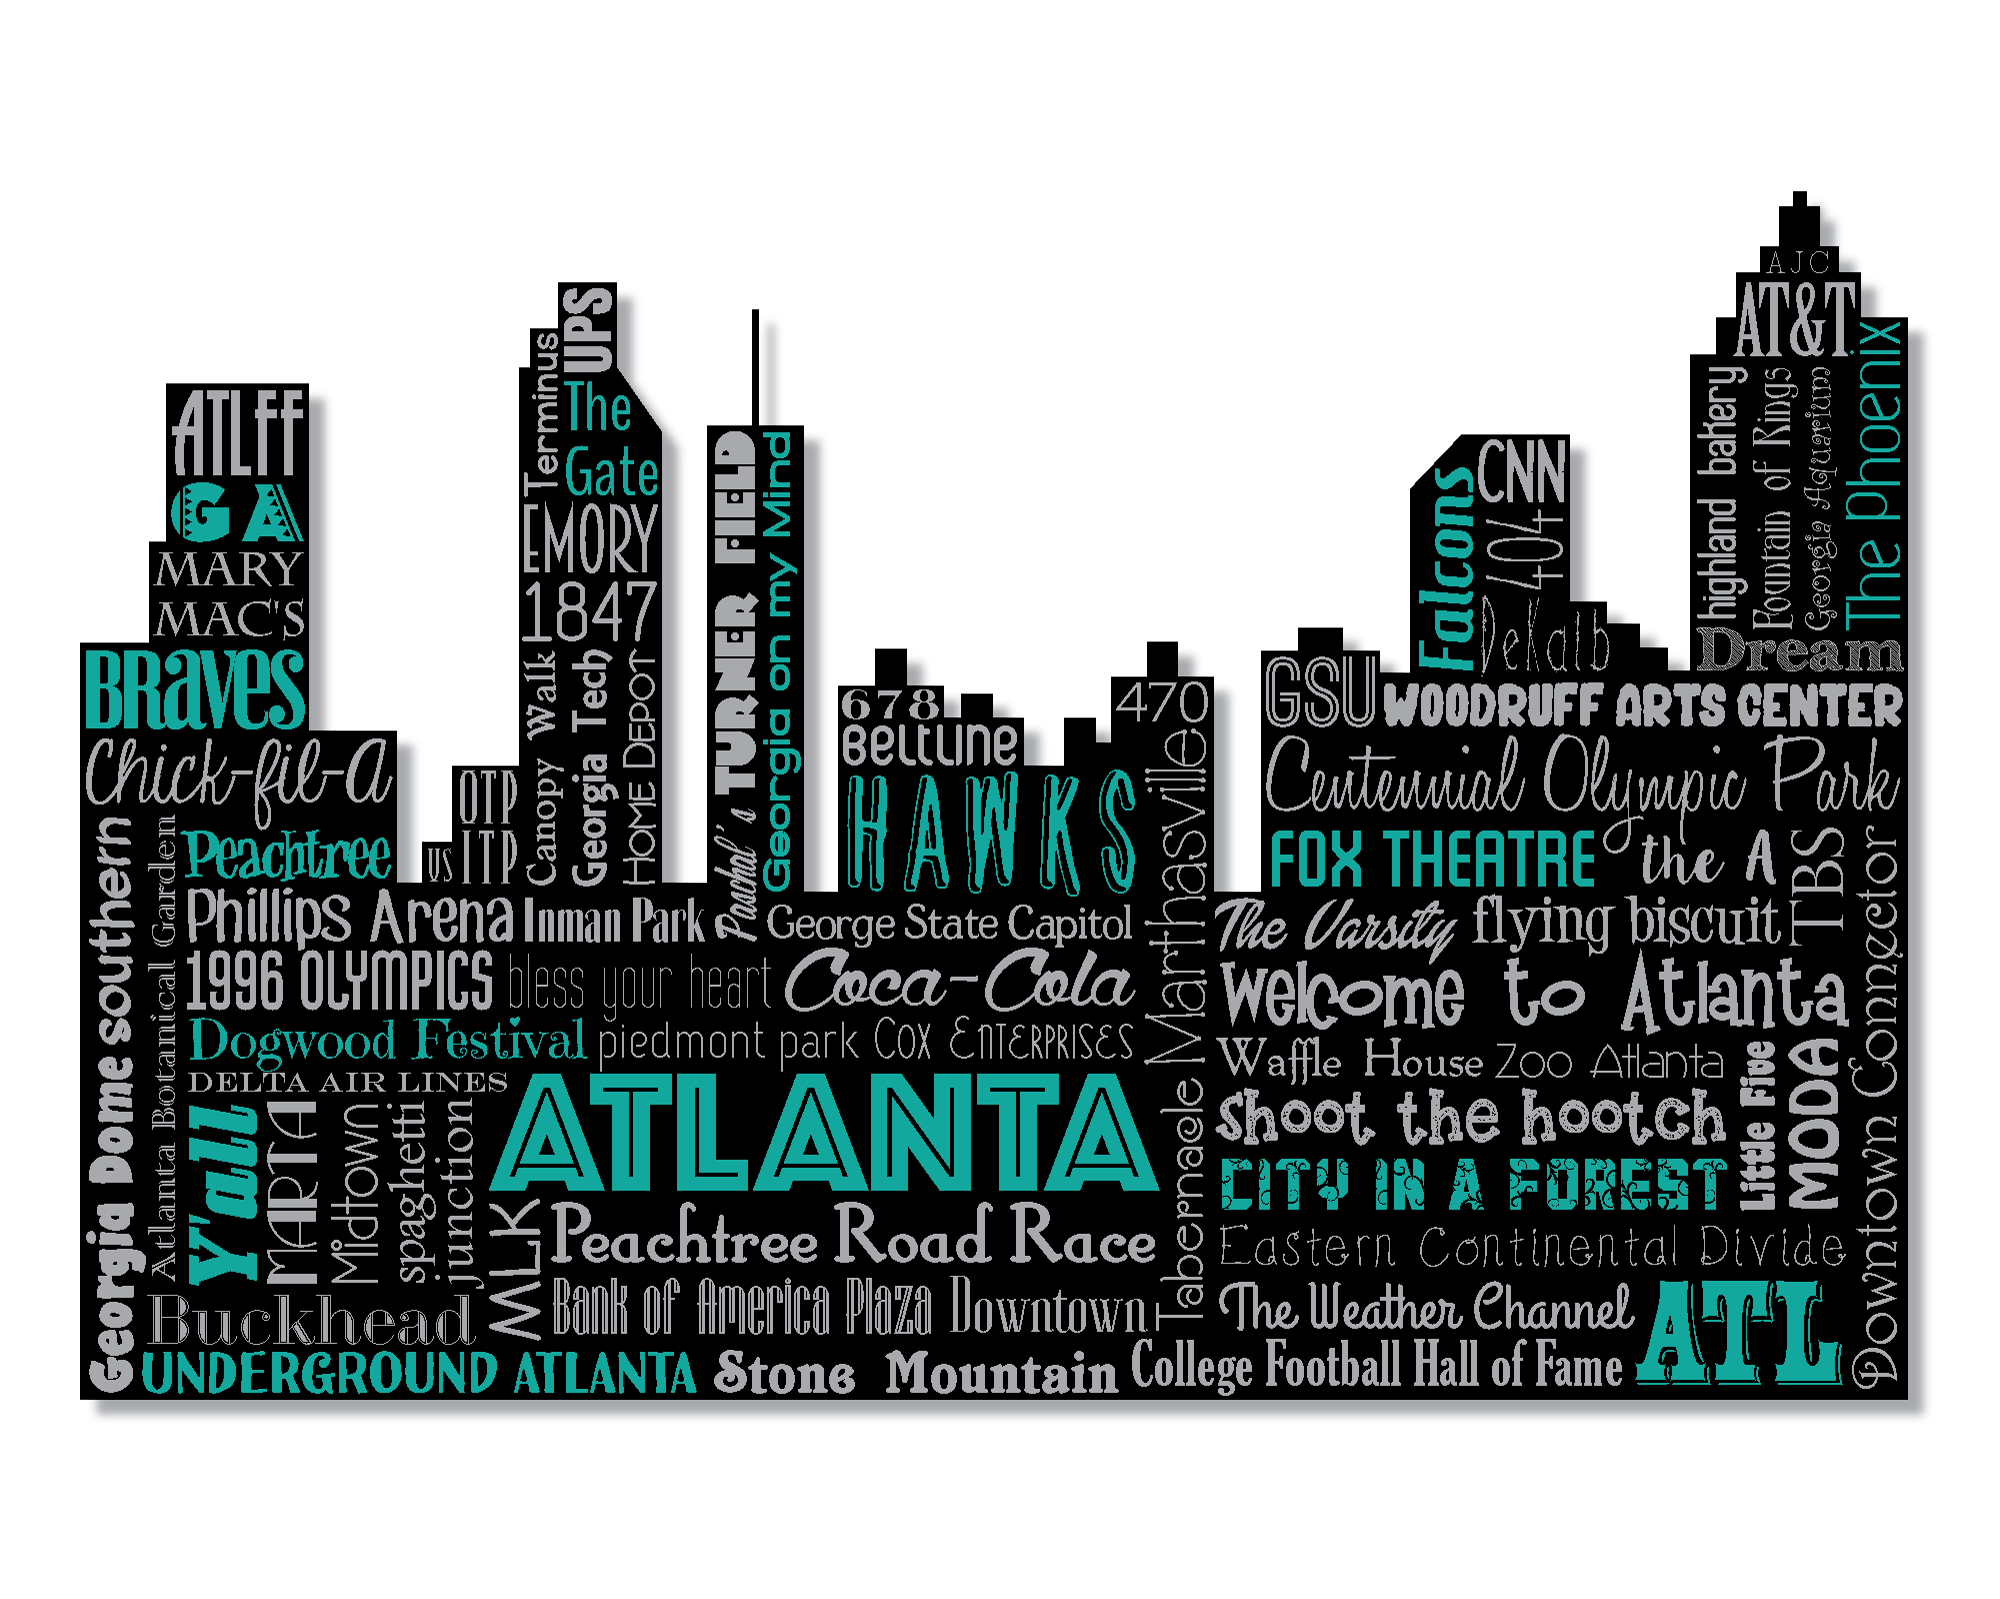 2000x1599 Original Artwork Using Words To Describe City Of Atlanta